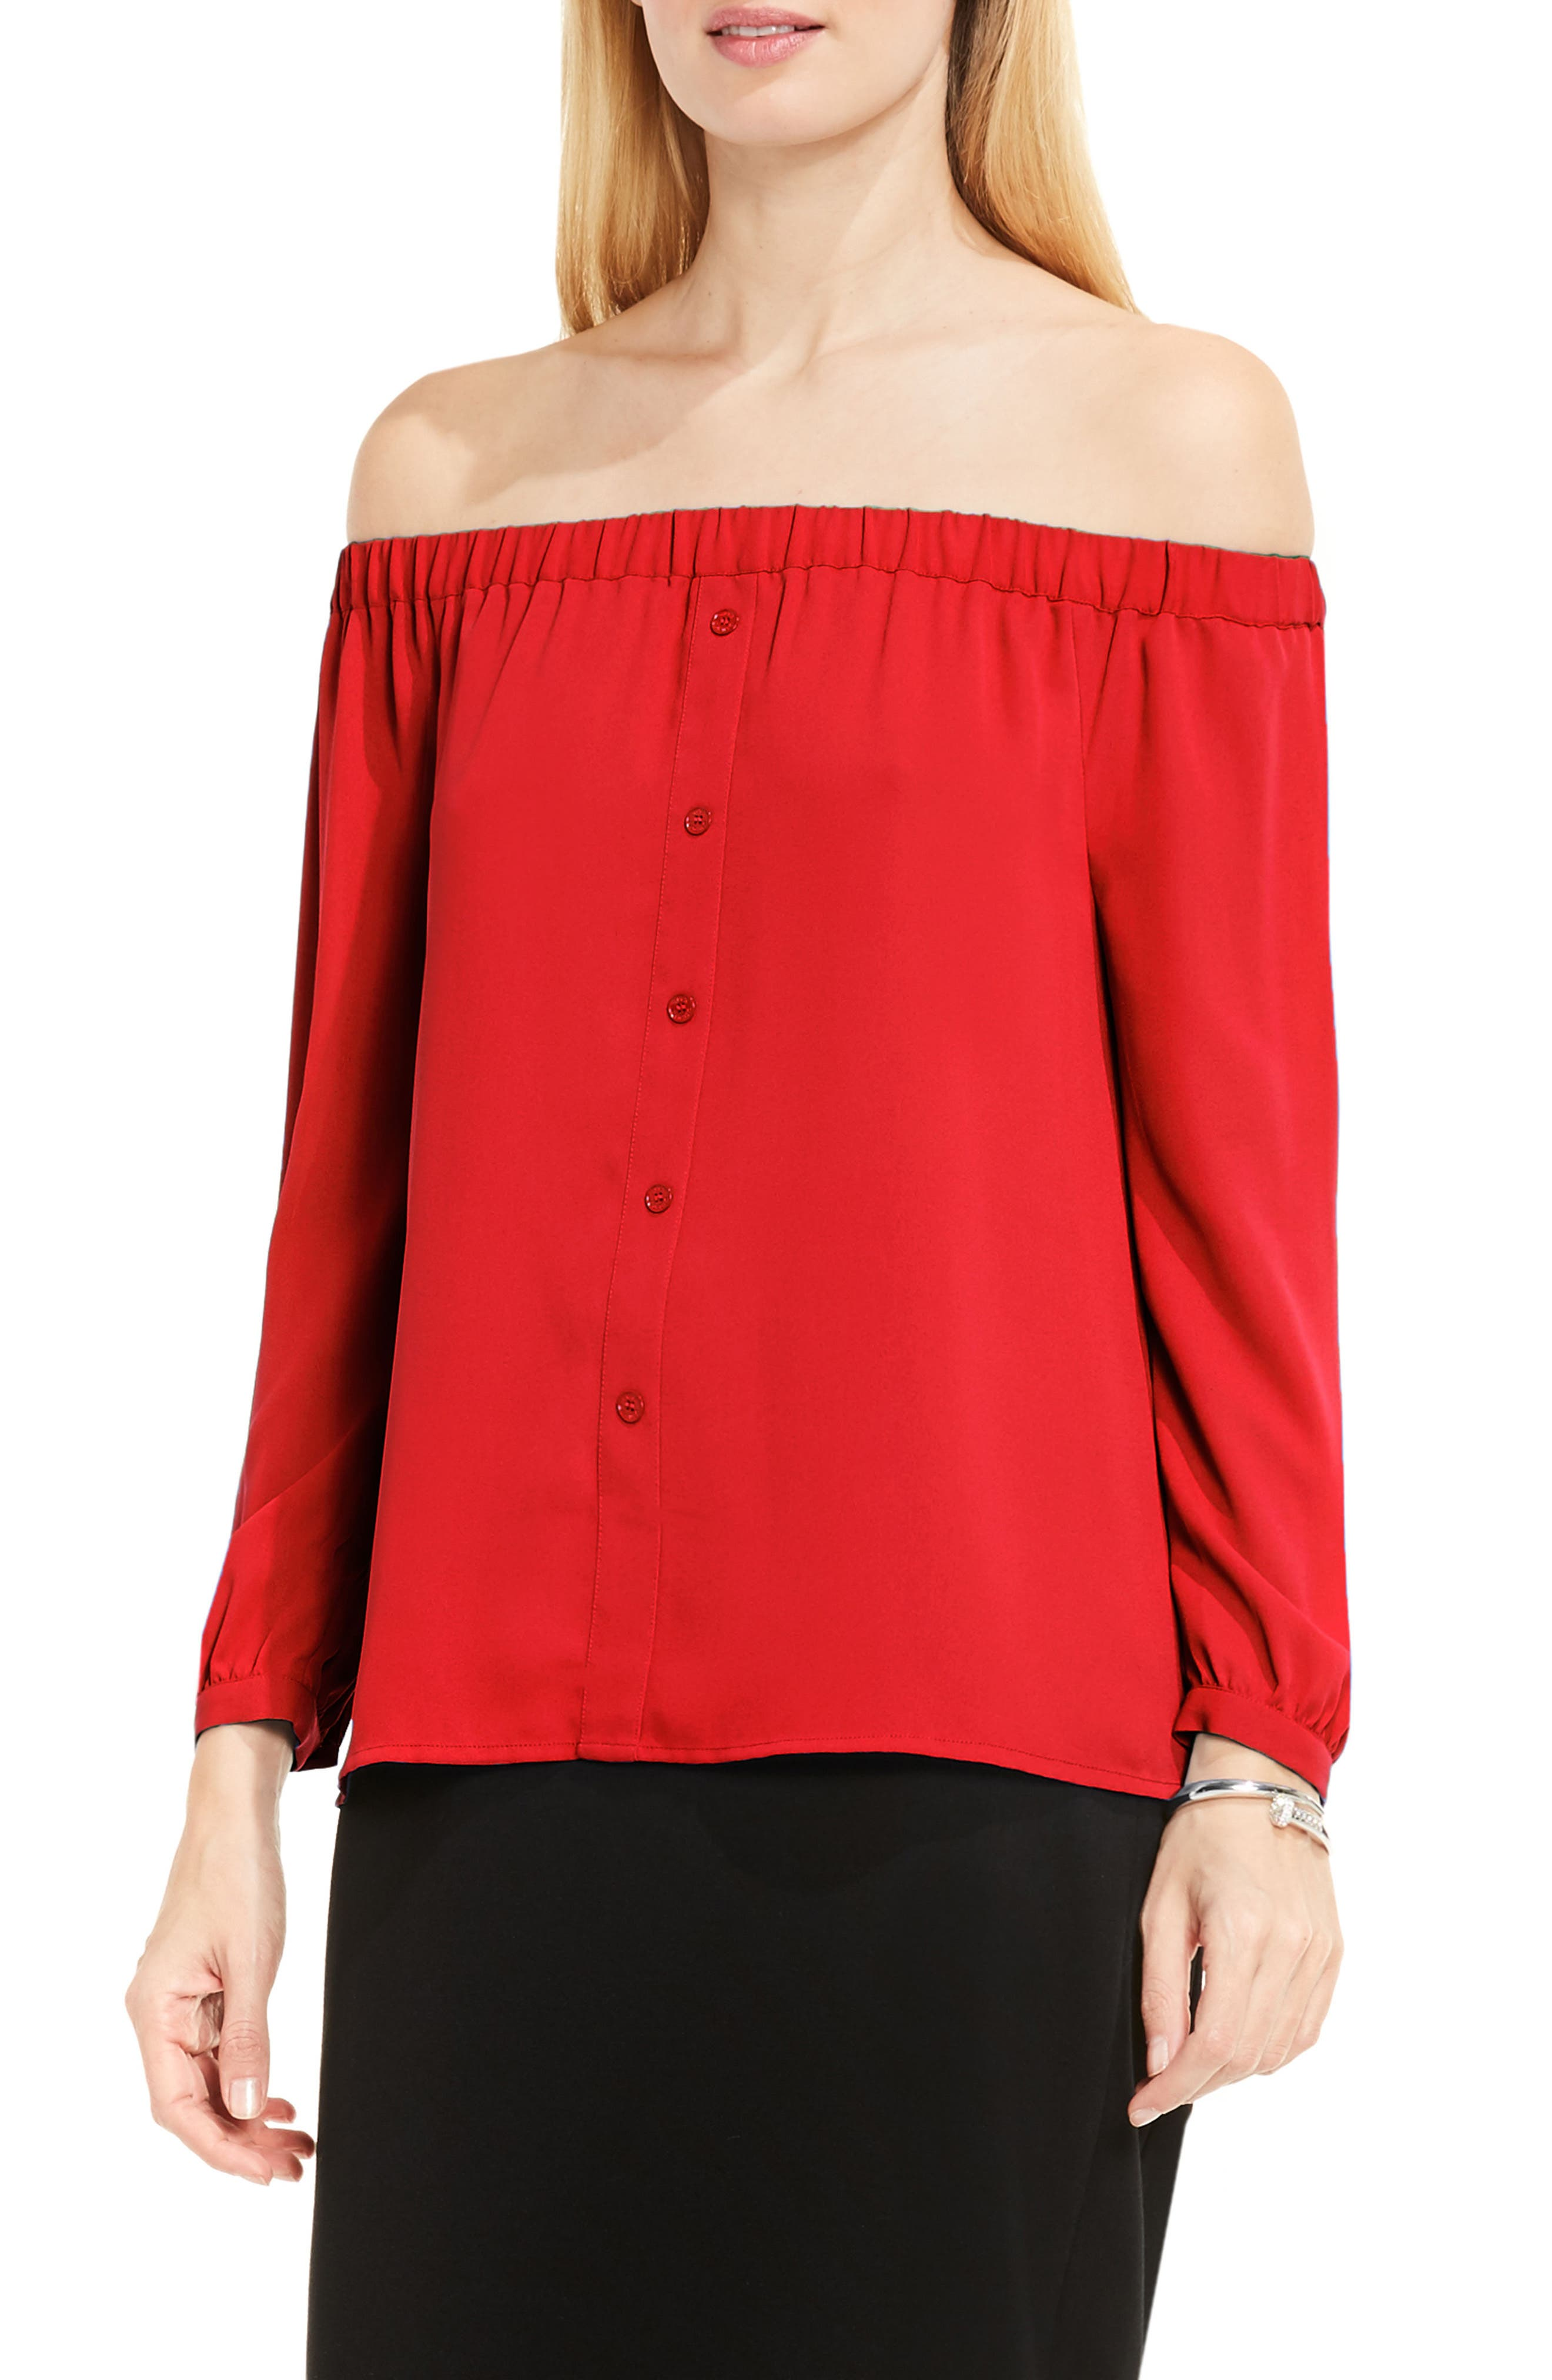 Alternate Image 1 Selected - Vince Camuto Off the Shoulder Blouse